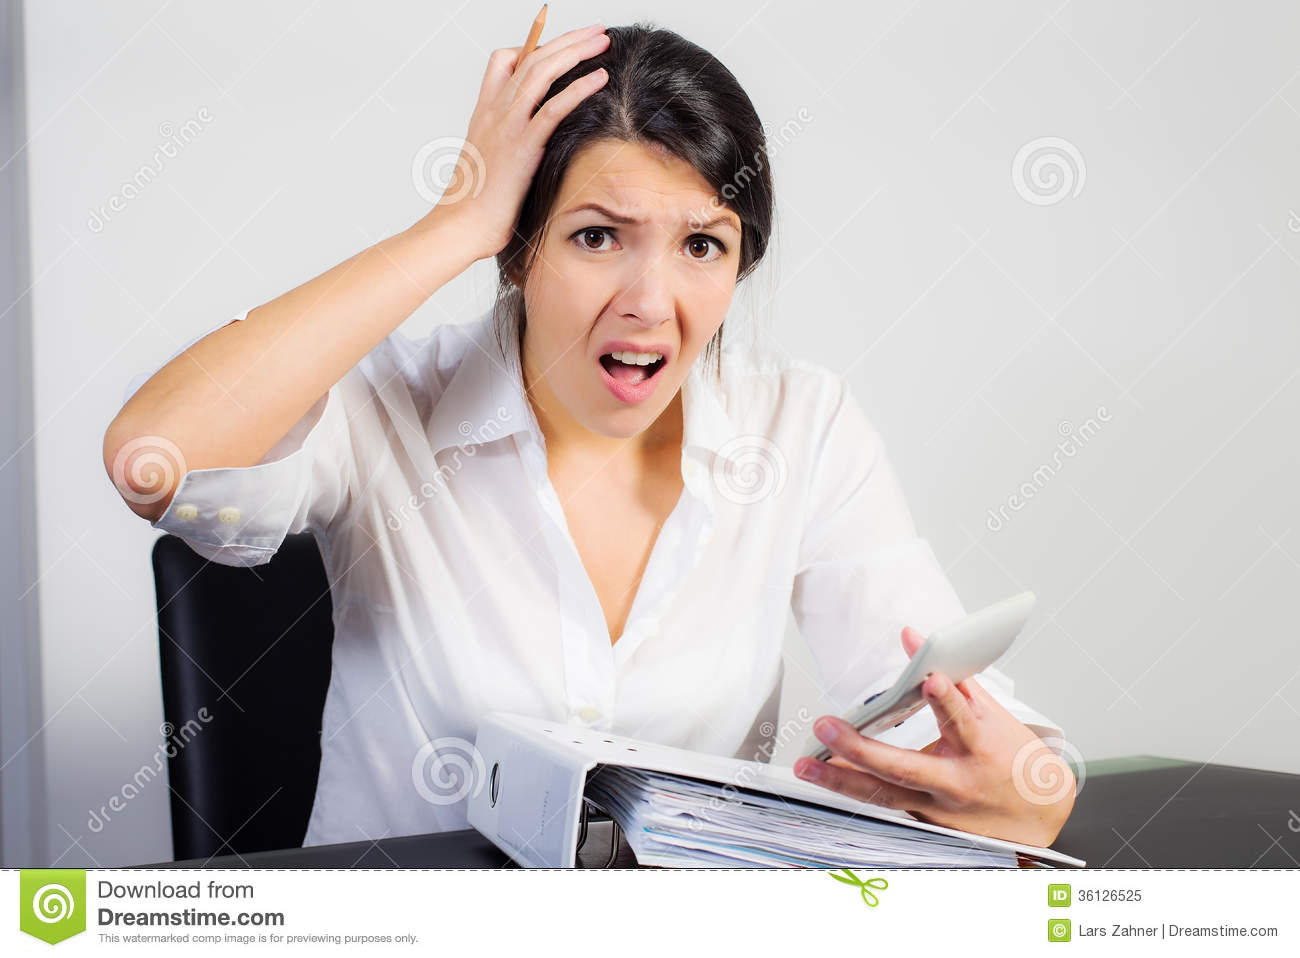 Businesswoman Looking At Her Calculator In Horror Royalty Free Stock ...